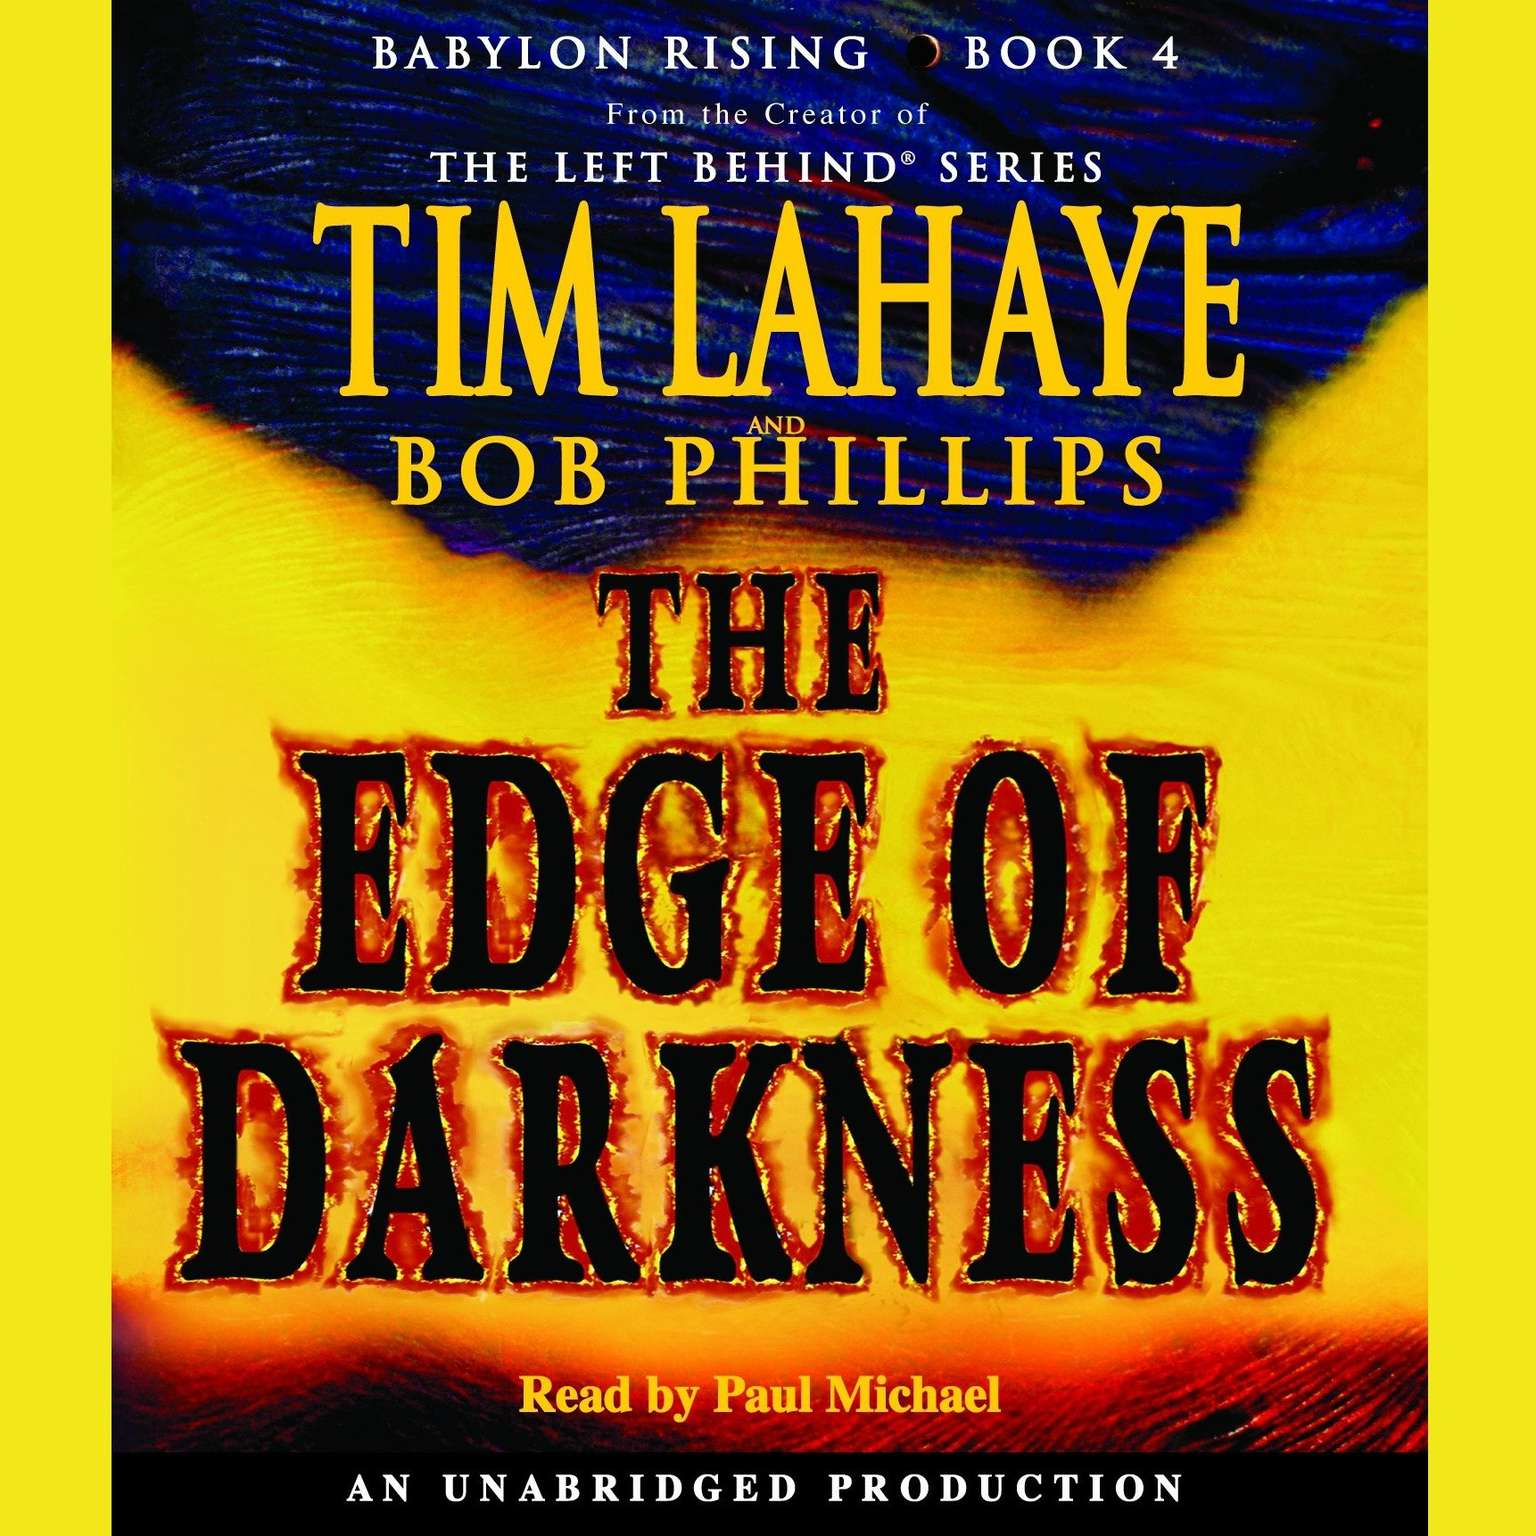 Printable The Edge of Darkness Audiobook Cover Art